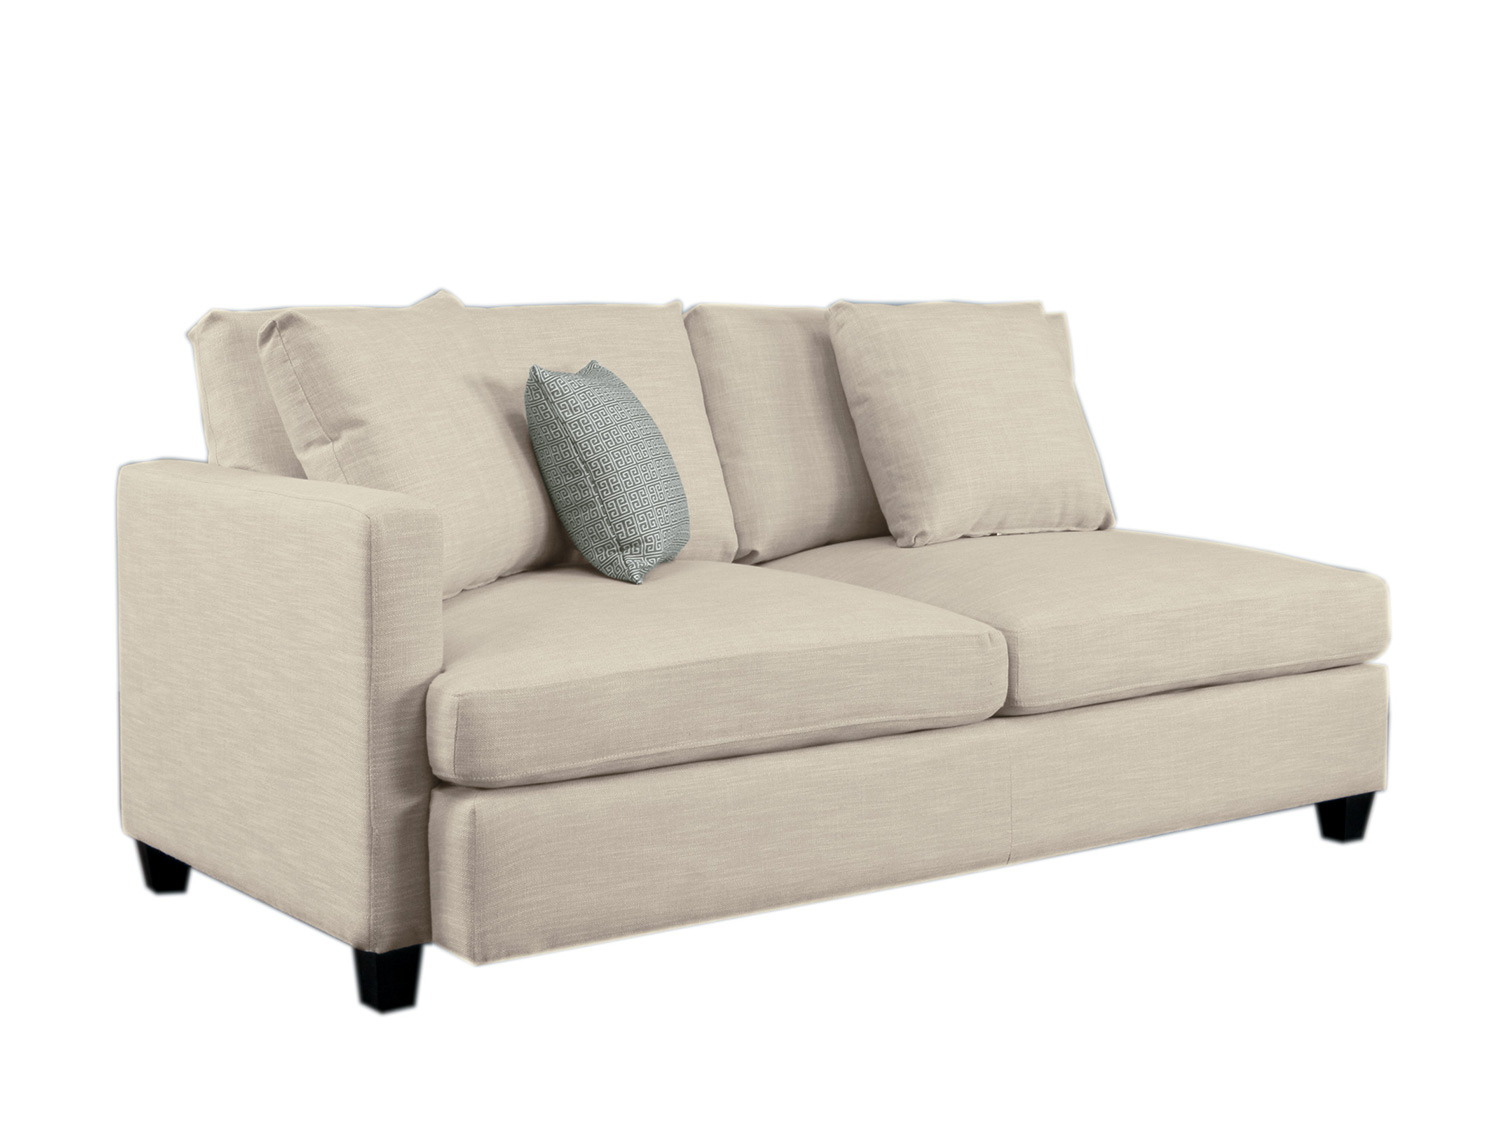 Homelegance Southgate Left Side 2-Seater - Ivory